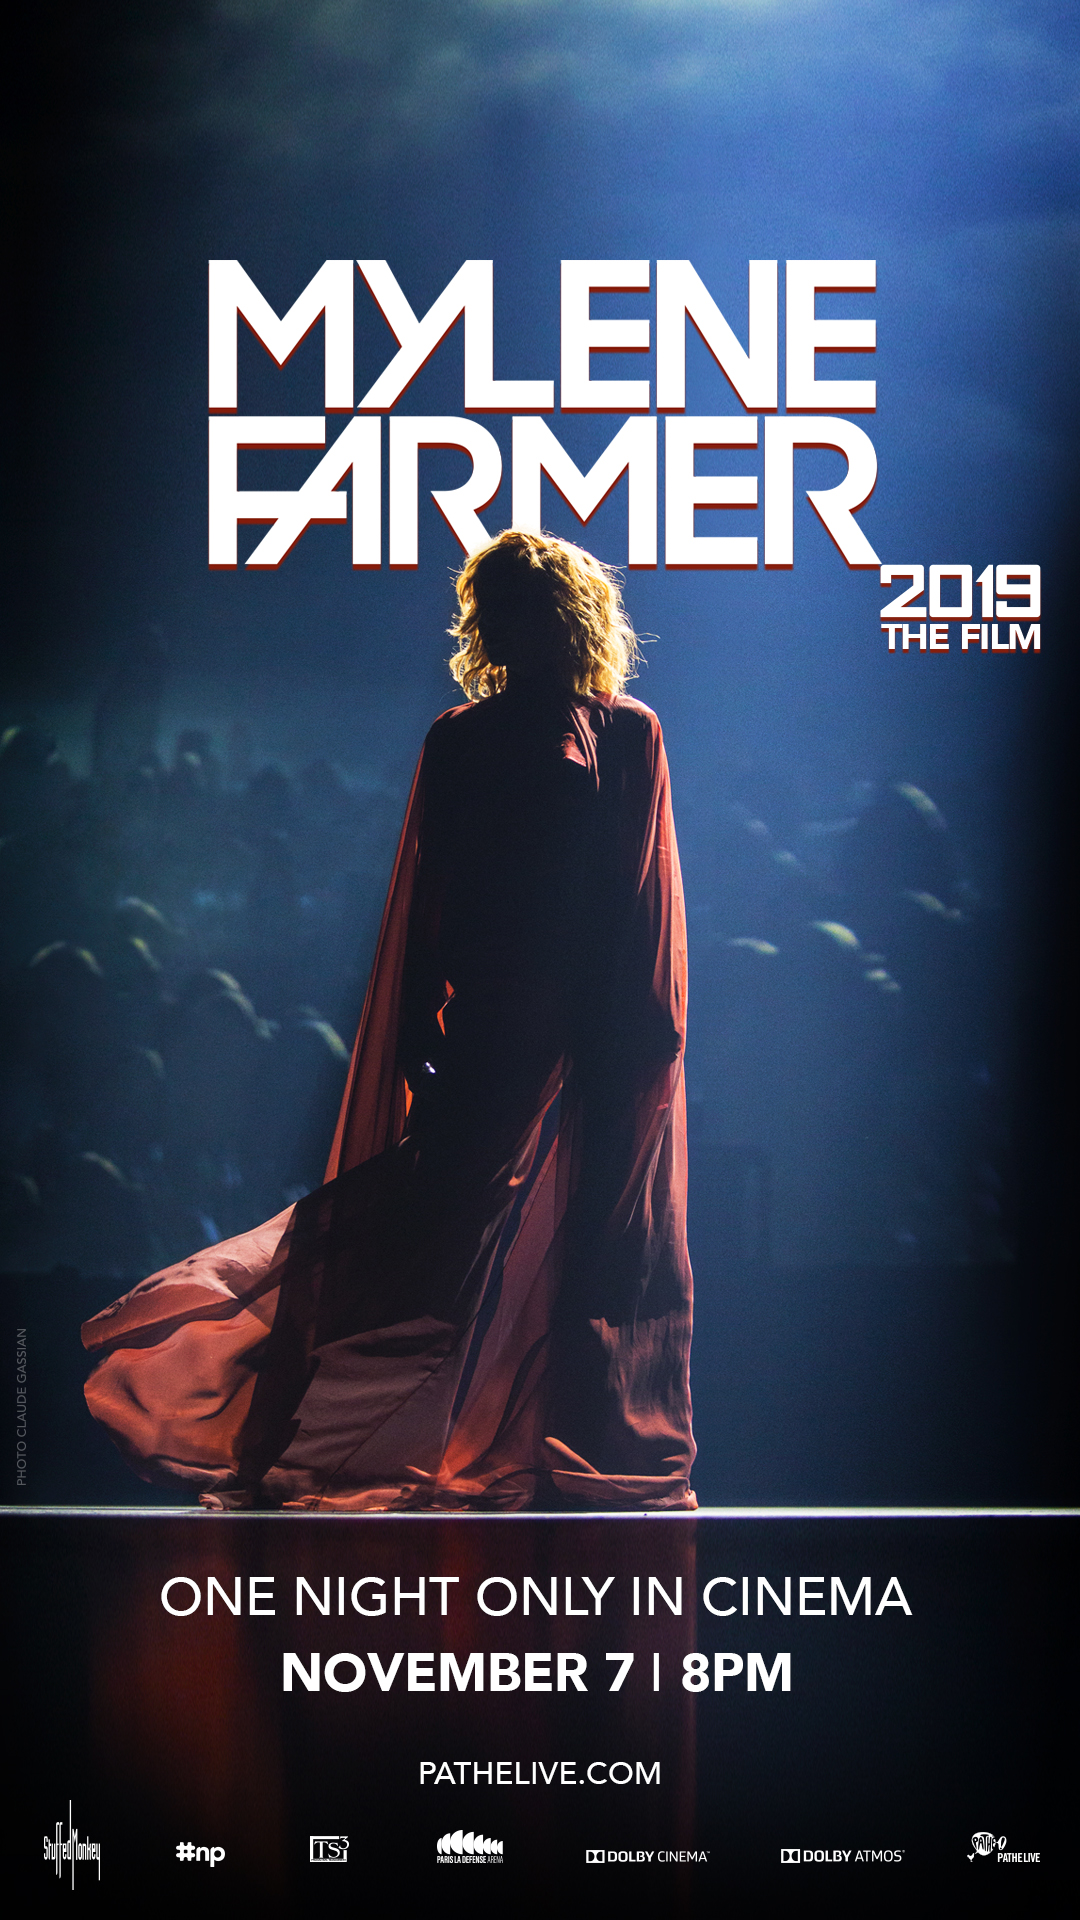 Mylene Farmer 2019 - The Movie